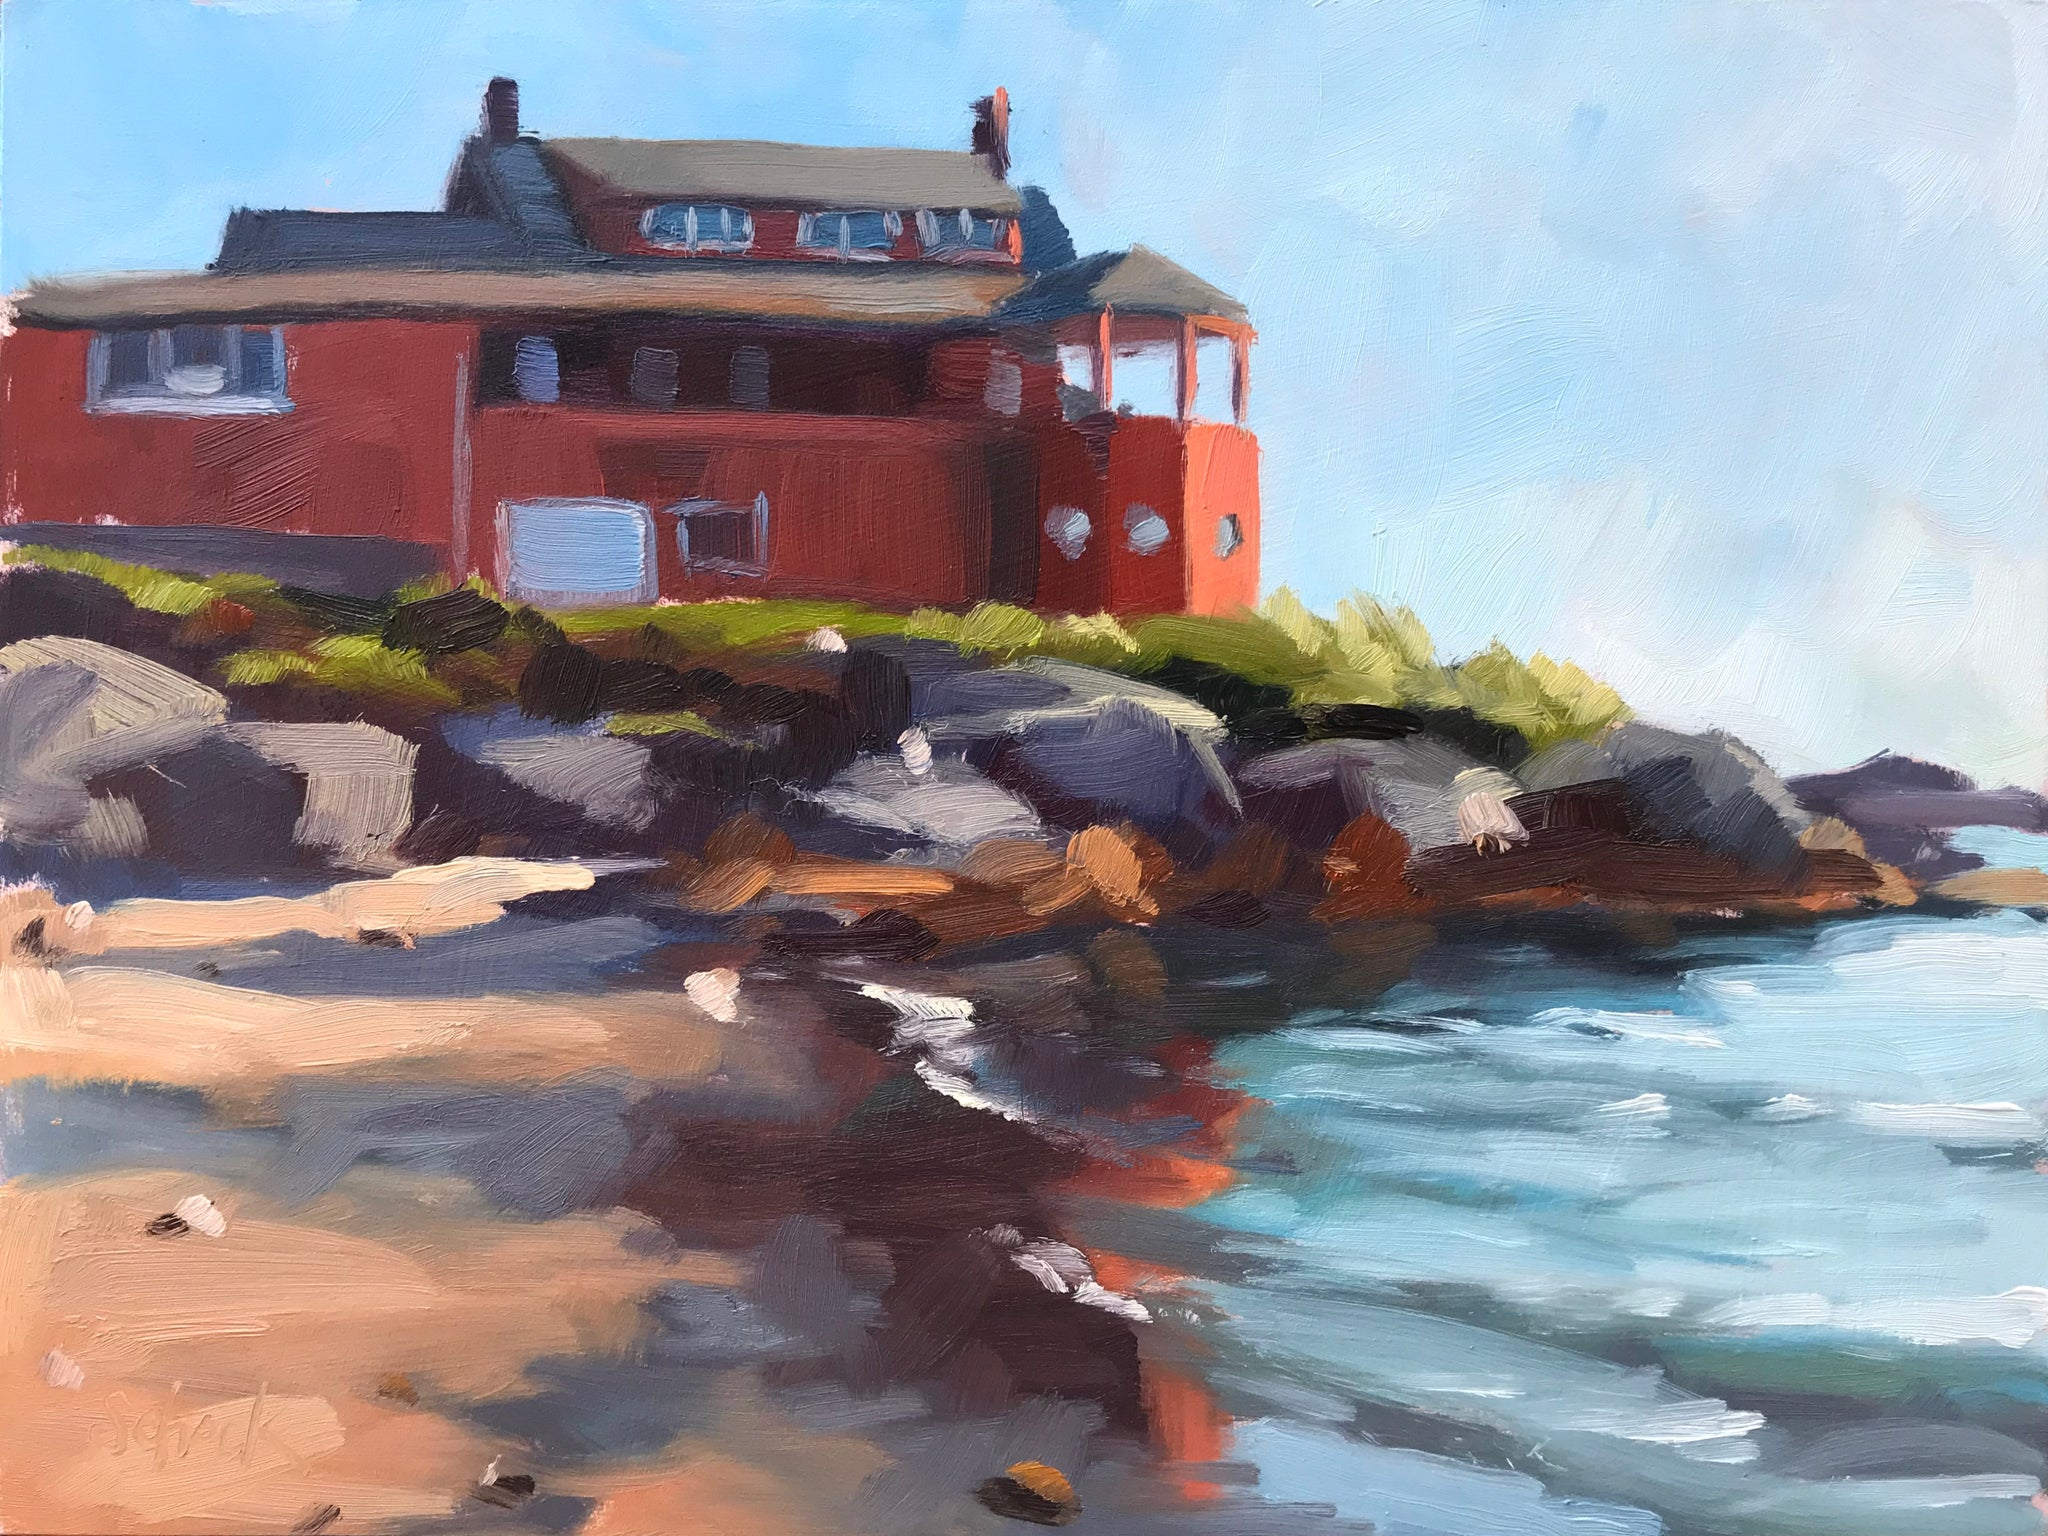 Red House on the Water - 6x8